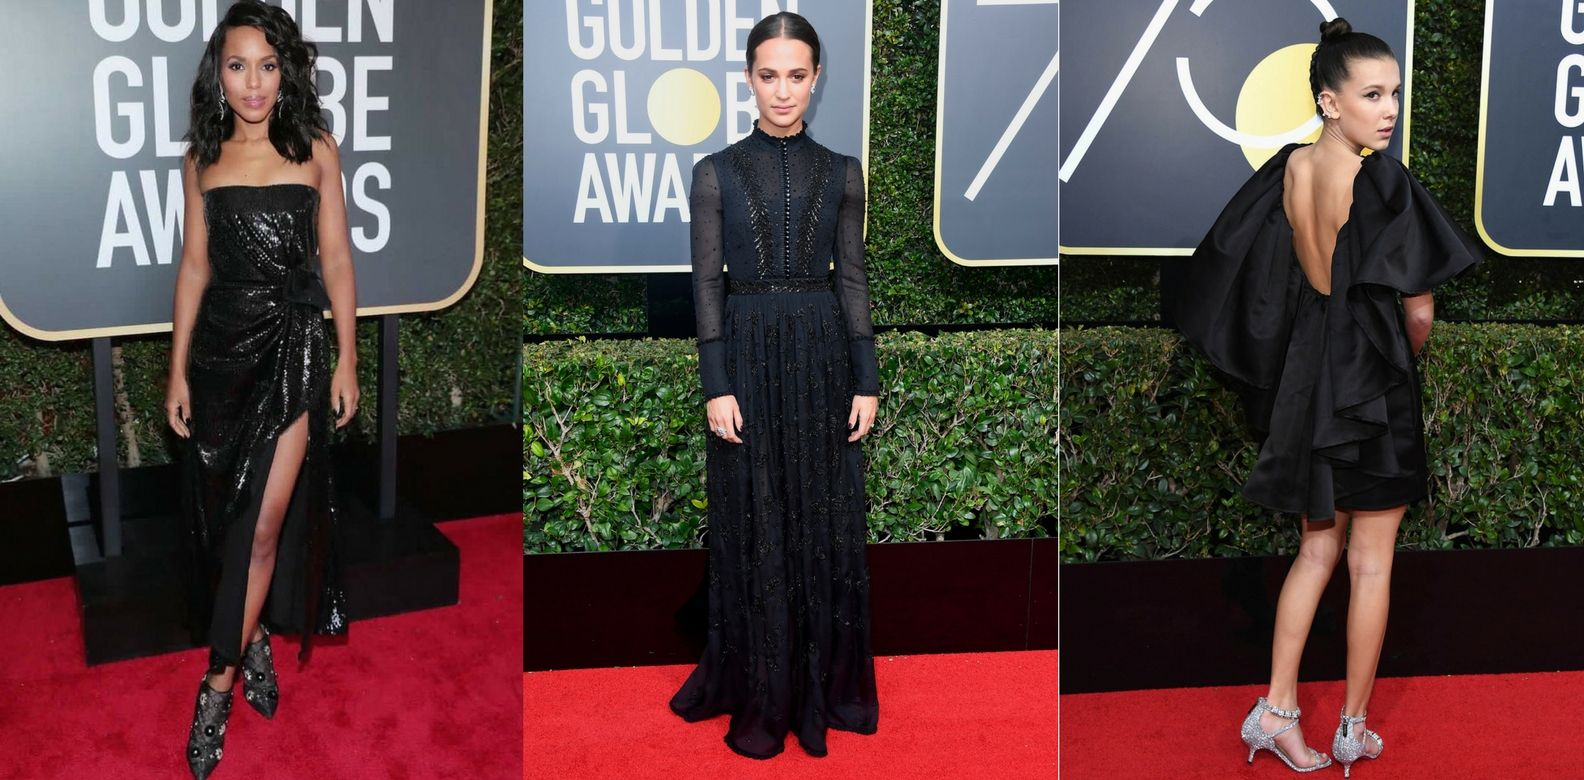 Blackout: 15 Best Dressed From The Golden Globes 2018